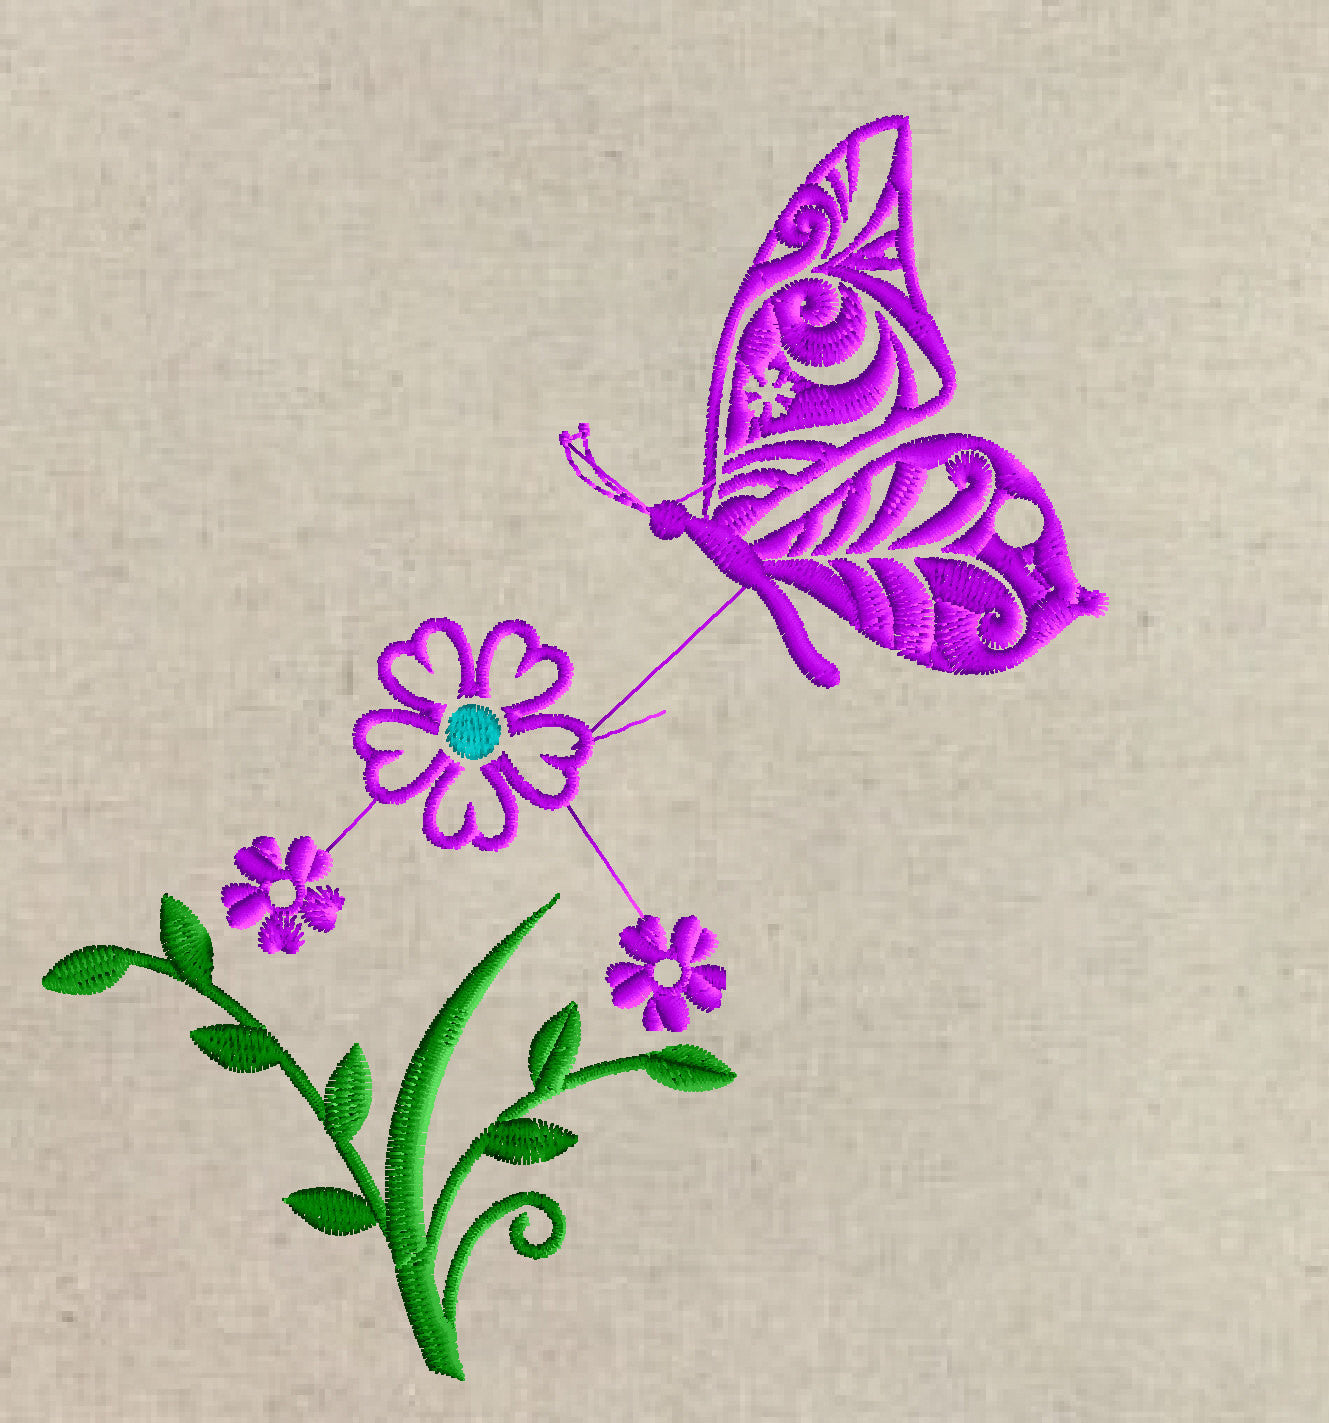 Butterfly Flowers Design - 2 sizes - Great Bundle -Parts & Together - EMBROIDERY DESIGN FILE - Instant download - Dst Hus Jef Pes Exp format